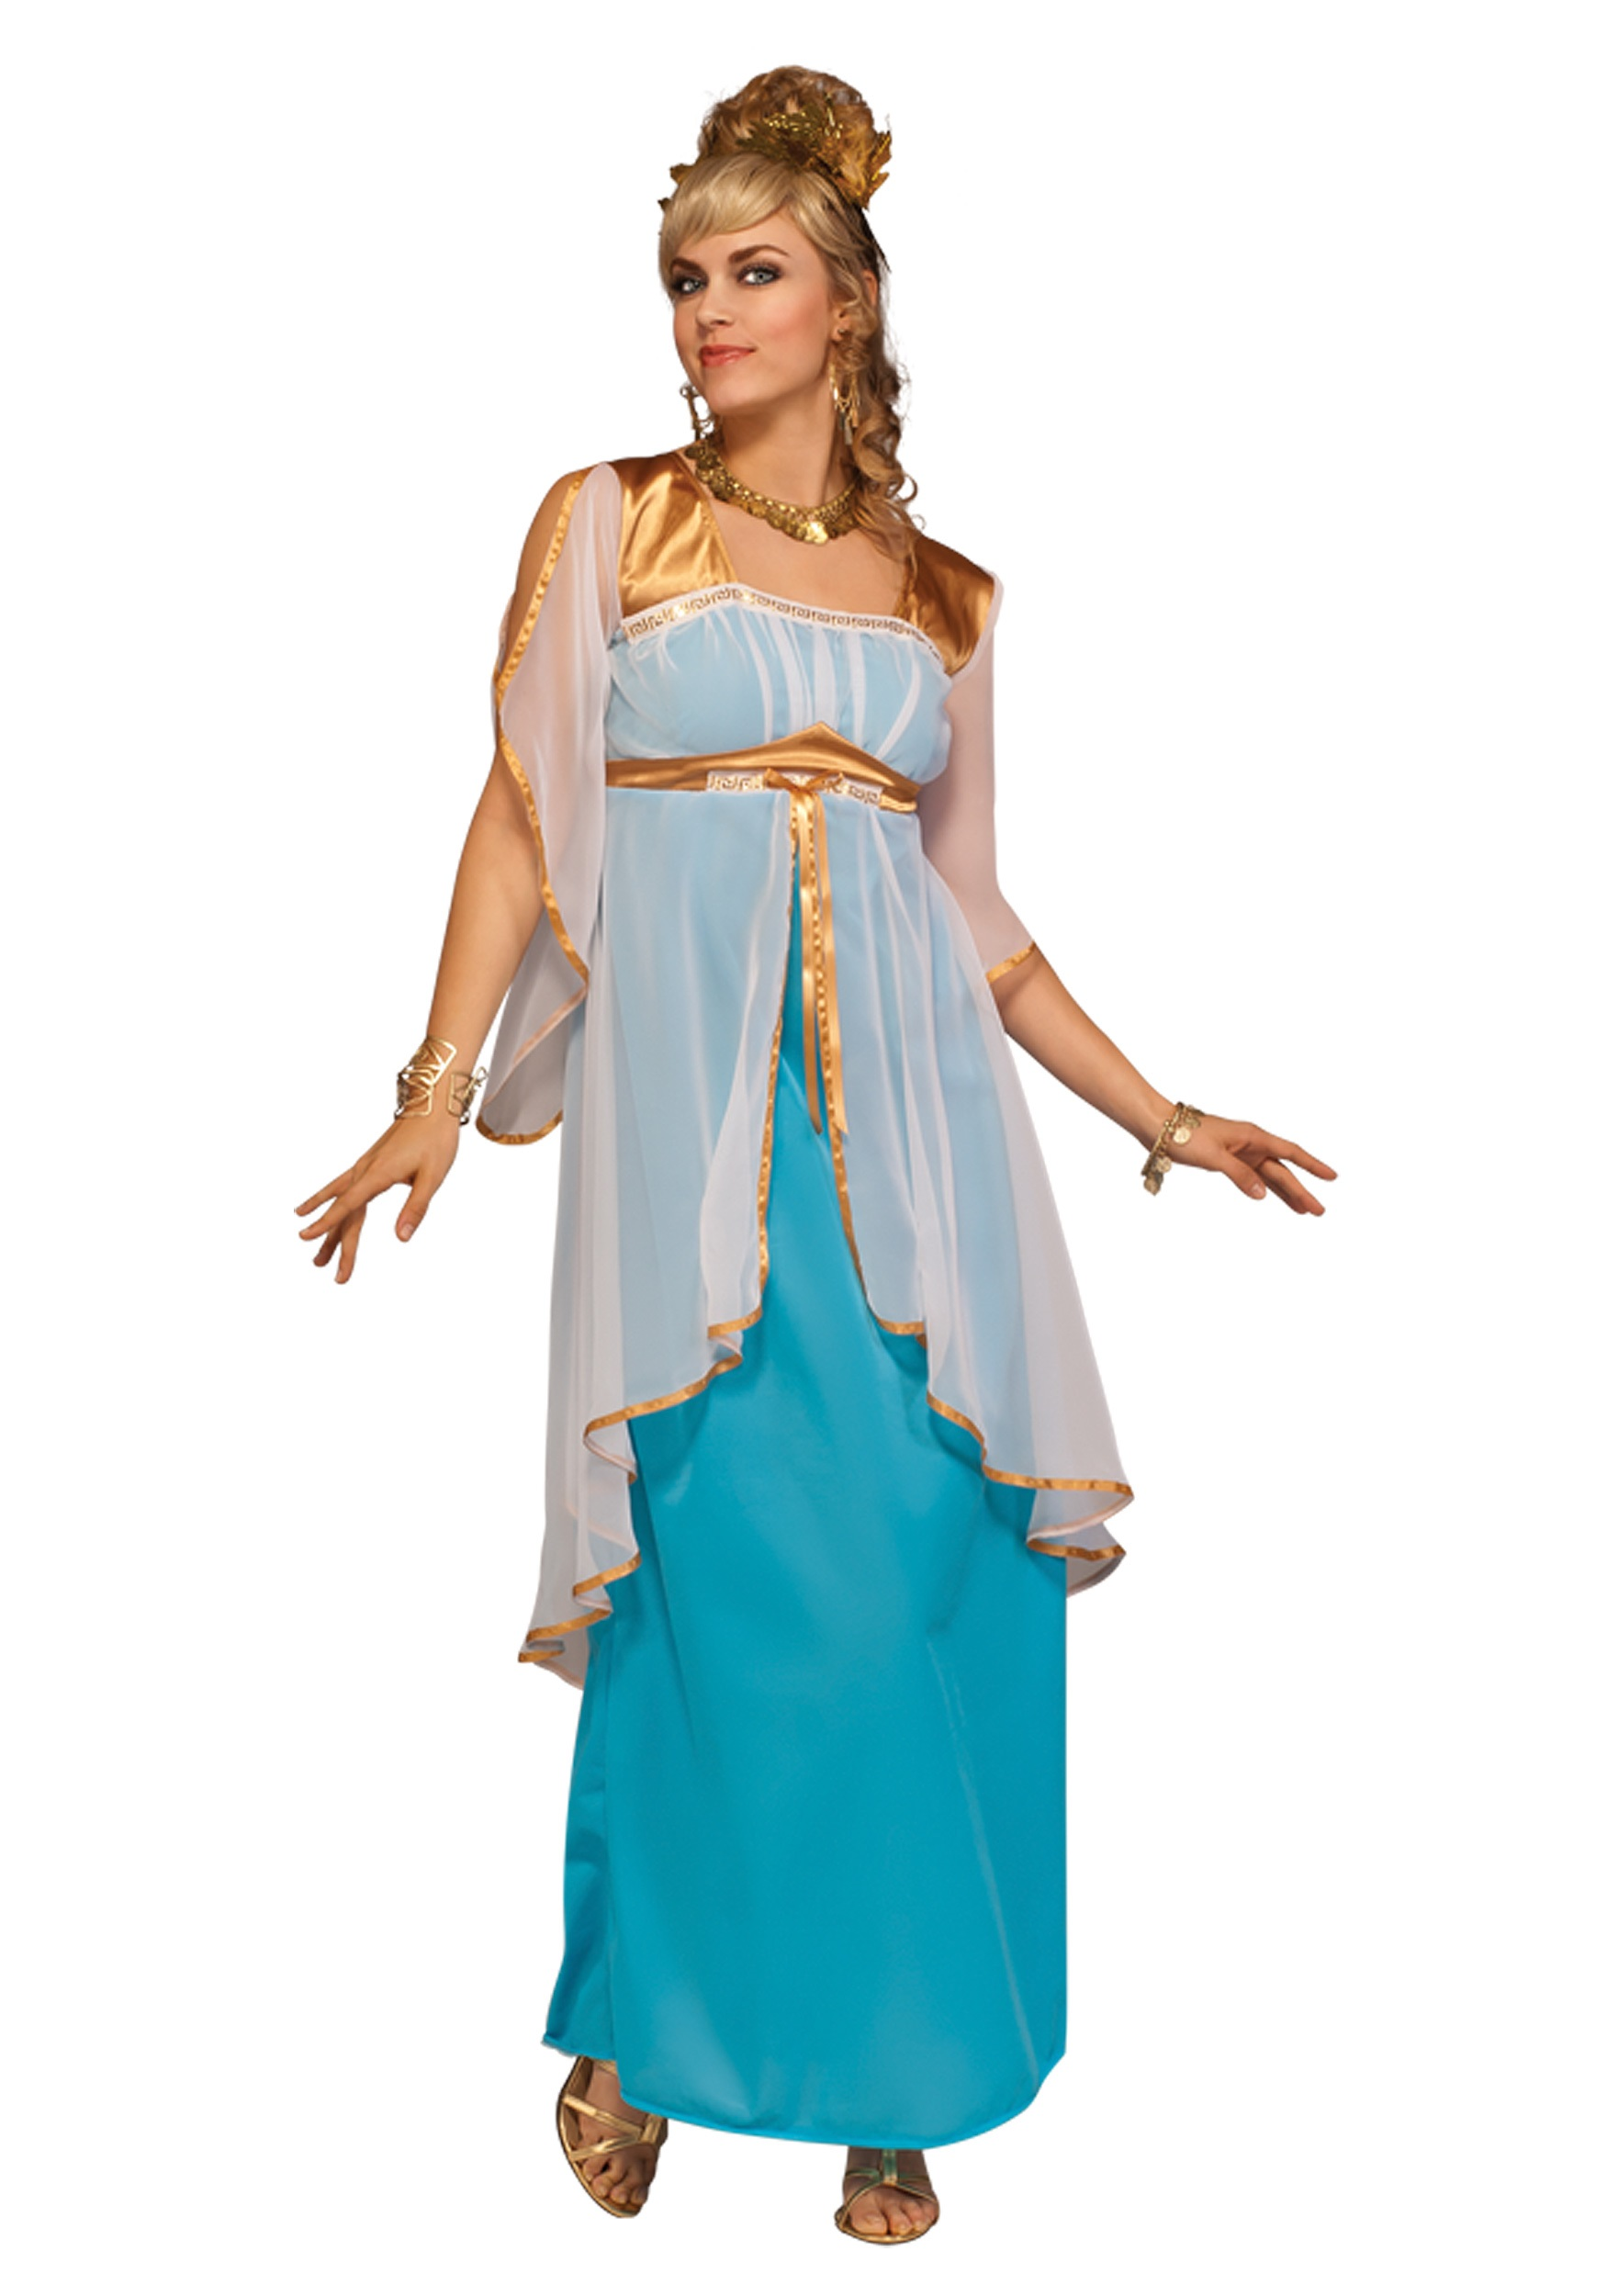 helen of troy goddess costume - halloween costumes